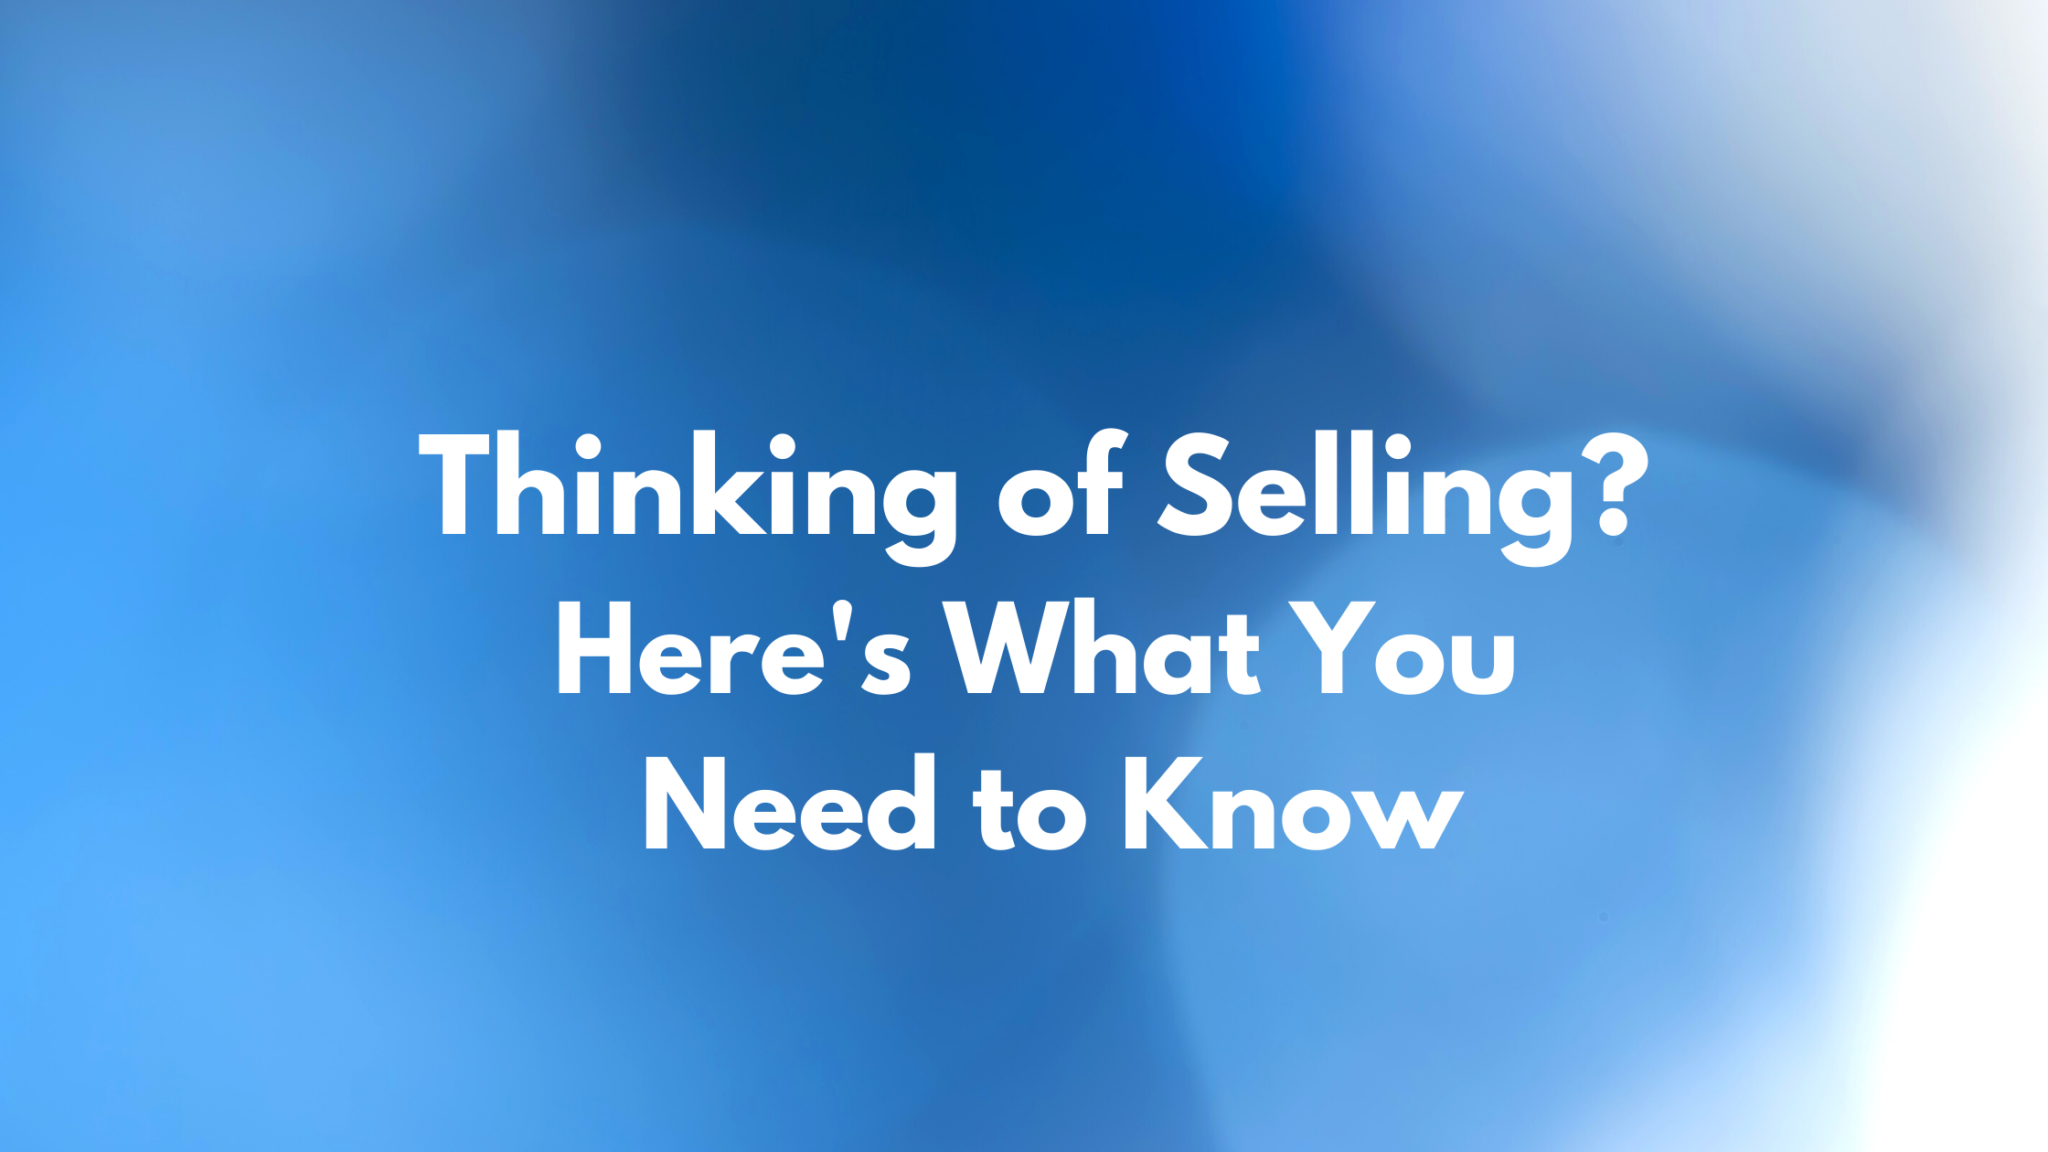 Thinking of Selling? Here's What You Need to Know